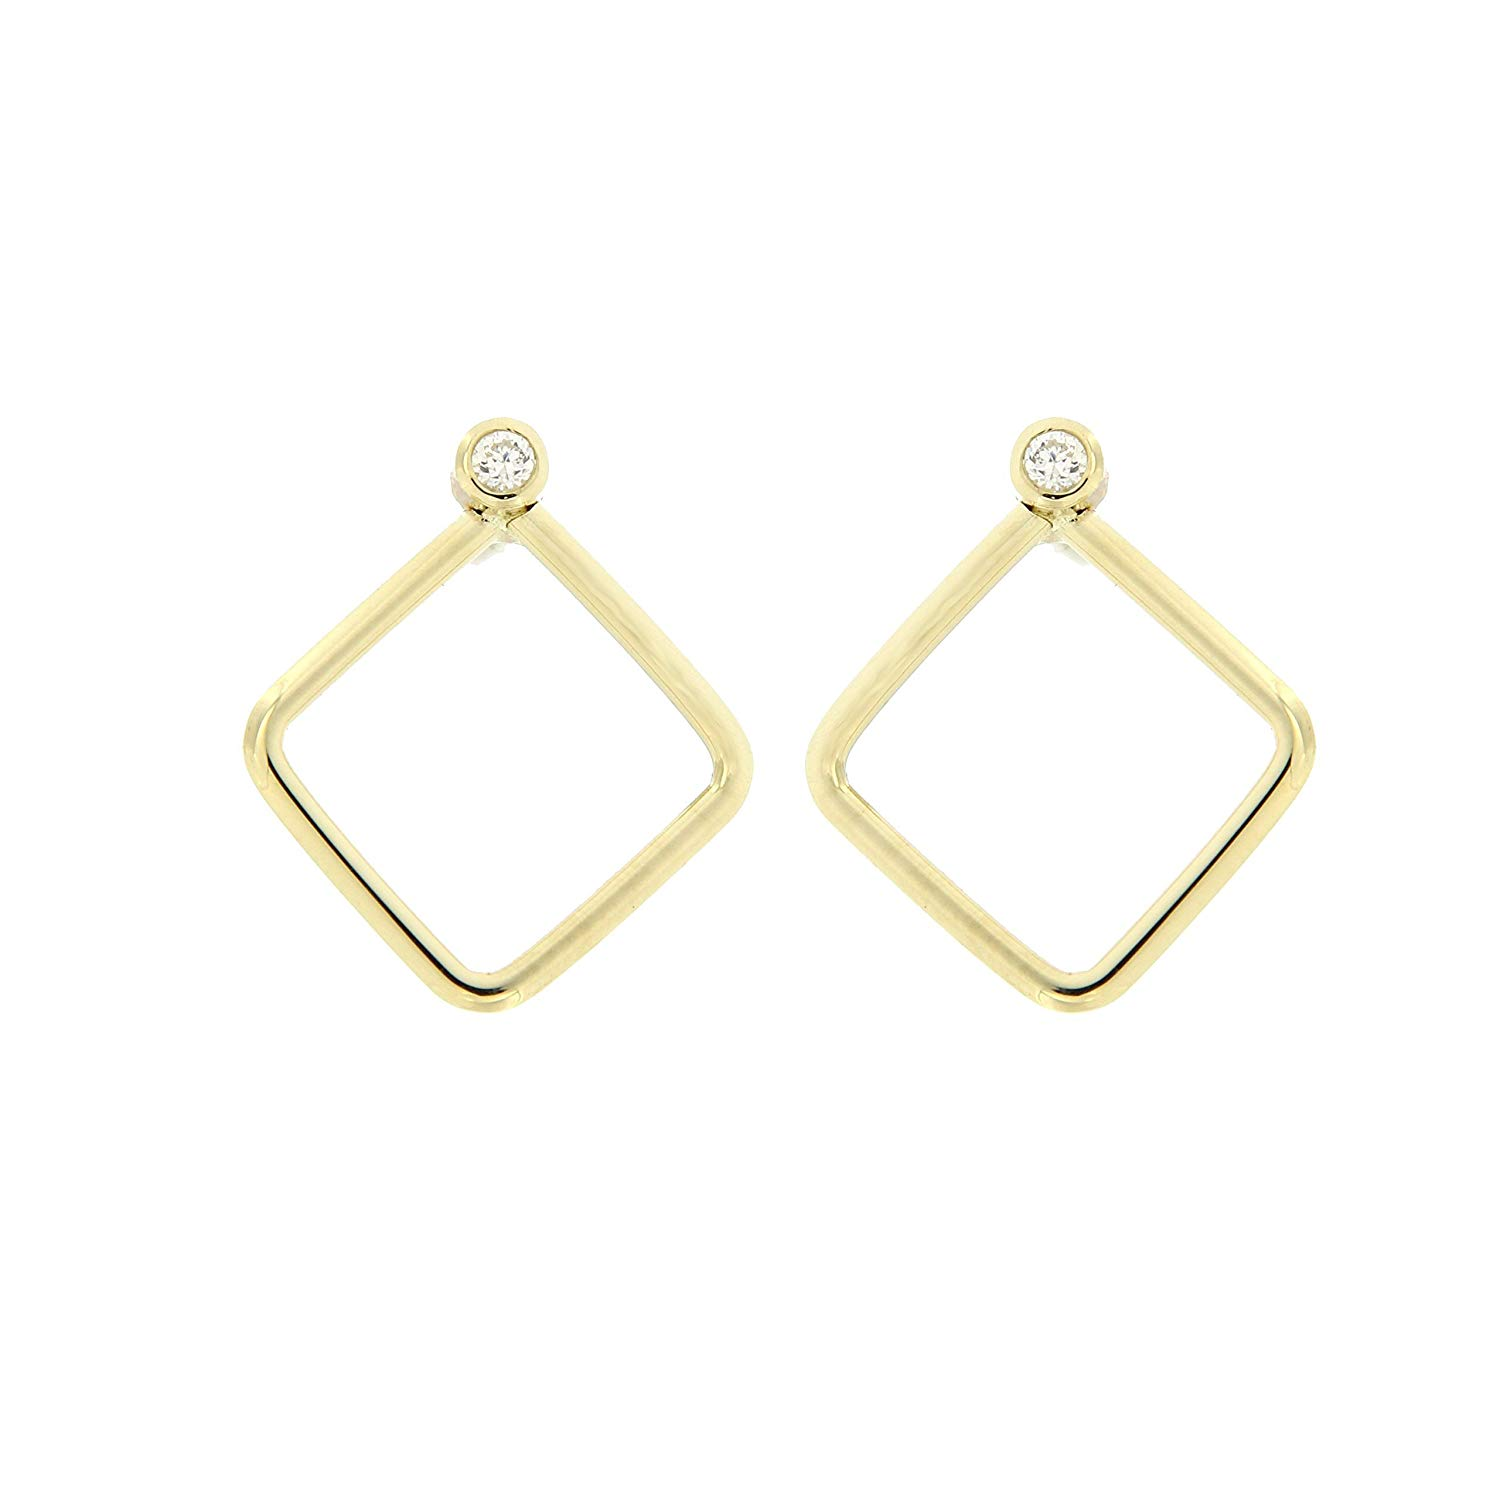 bfa36deb8 Get Quotations · Gold Square Earrings Simple Diamond Studs for Women 14K  Solid Gold Minimalist Geometrics Tiny Diamonds Everyday